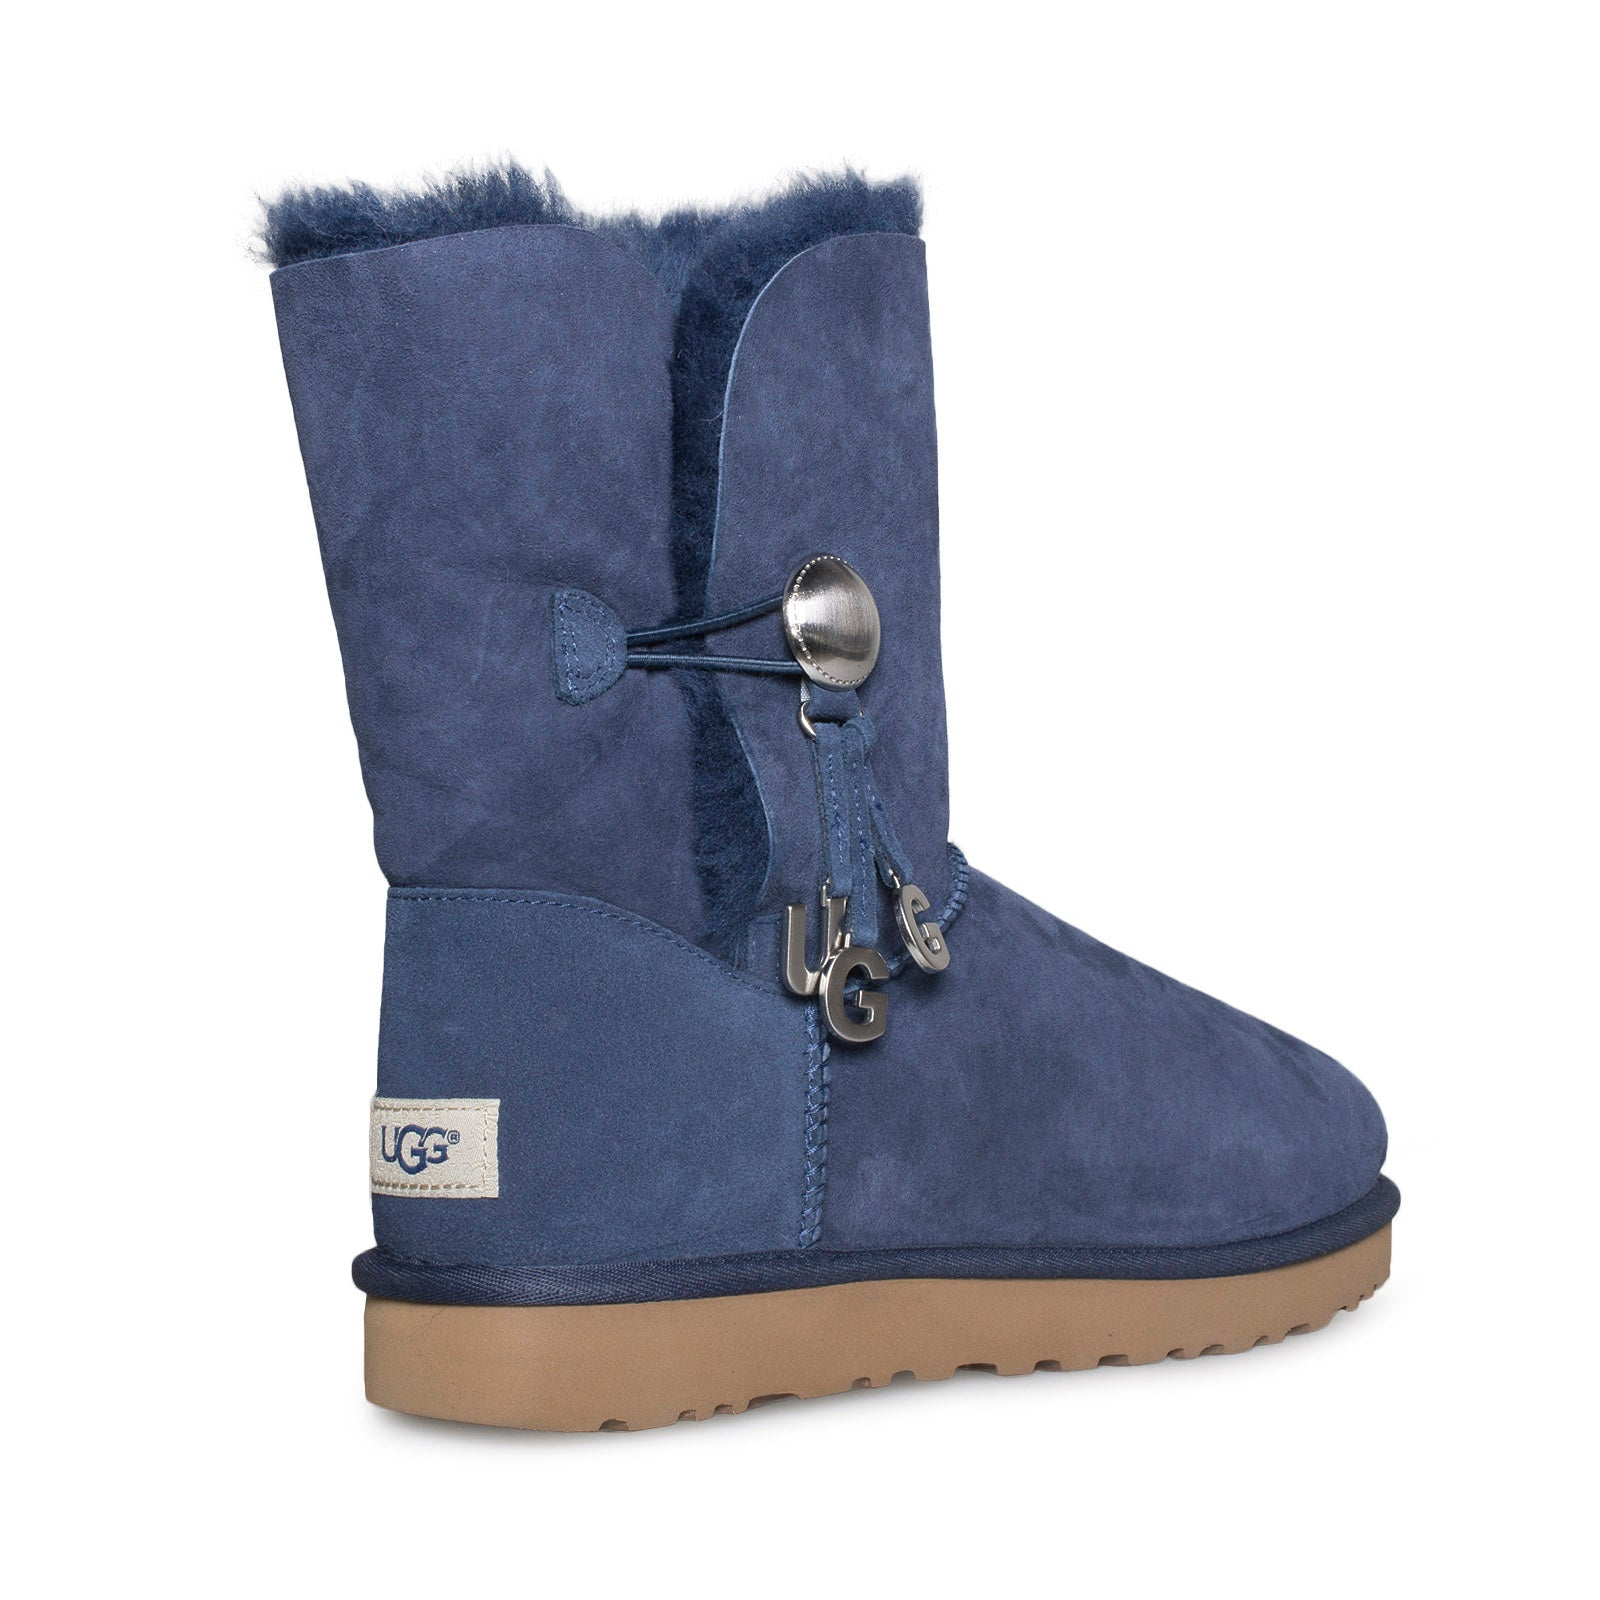 high quality outlet for sale nice shoes UGG Bailey Button UGG Charm Navy Boots - Women's